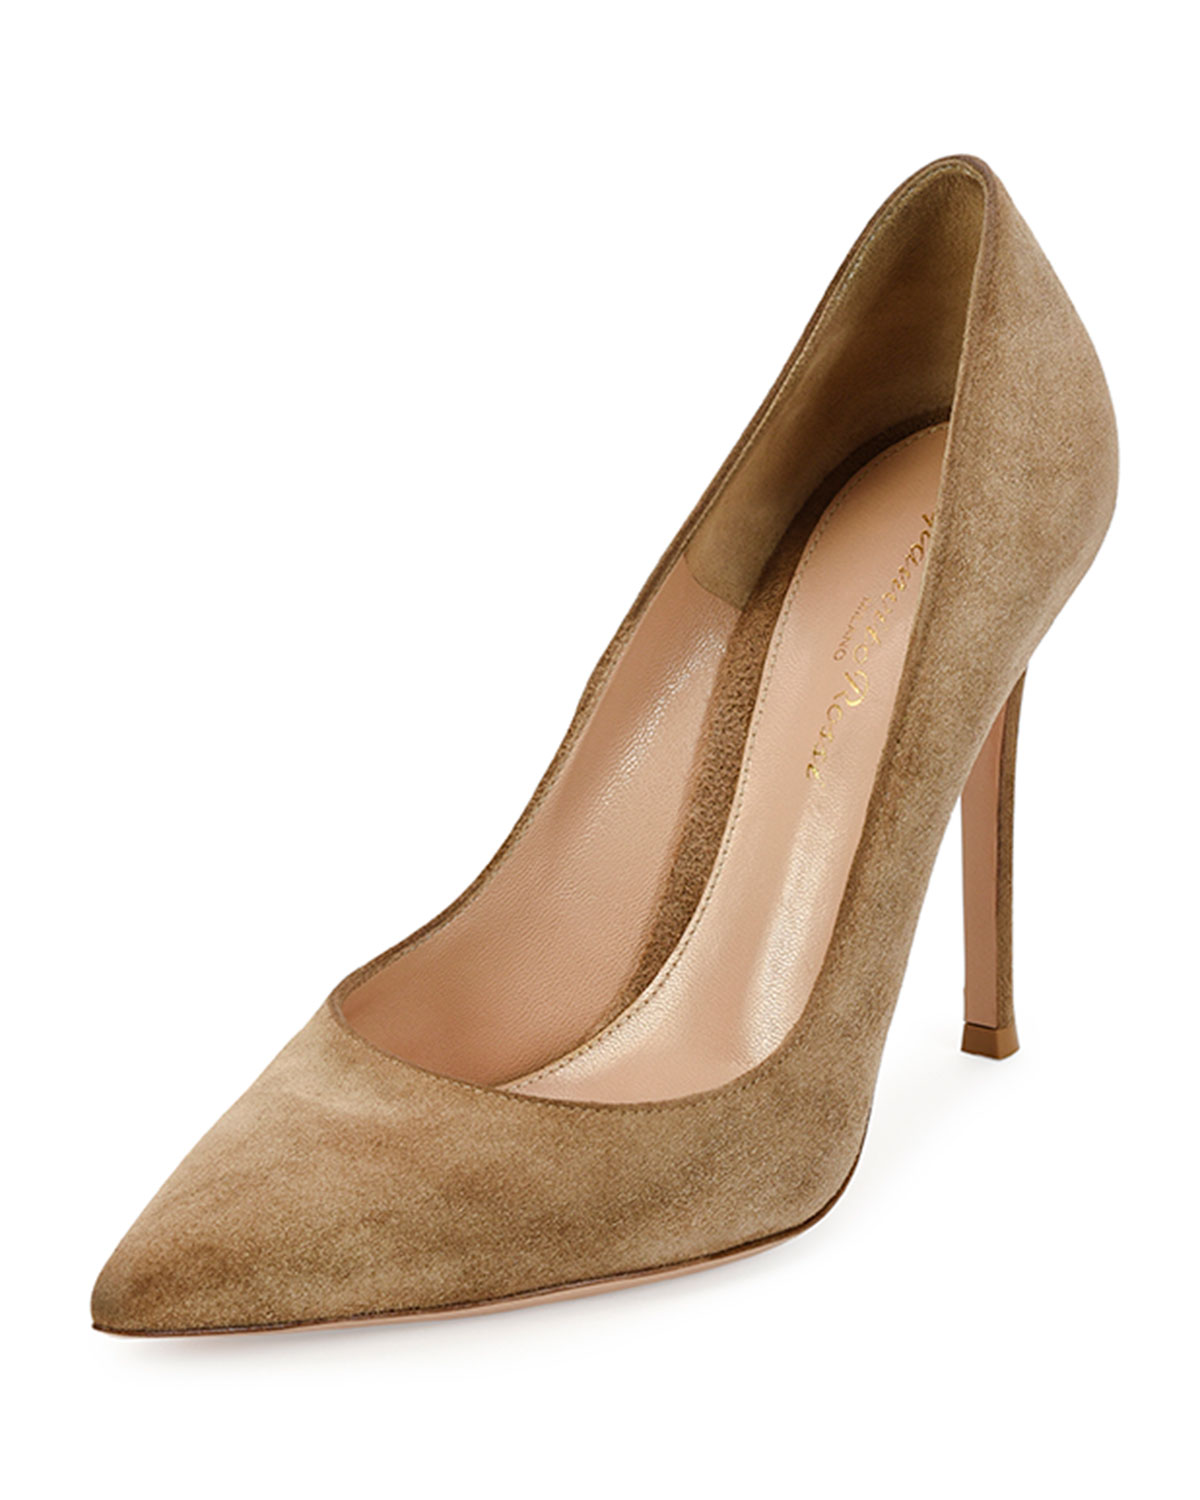 Suede Point-Toe 105mm Pump, Bisque - Gianvito Rossi